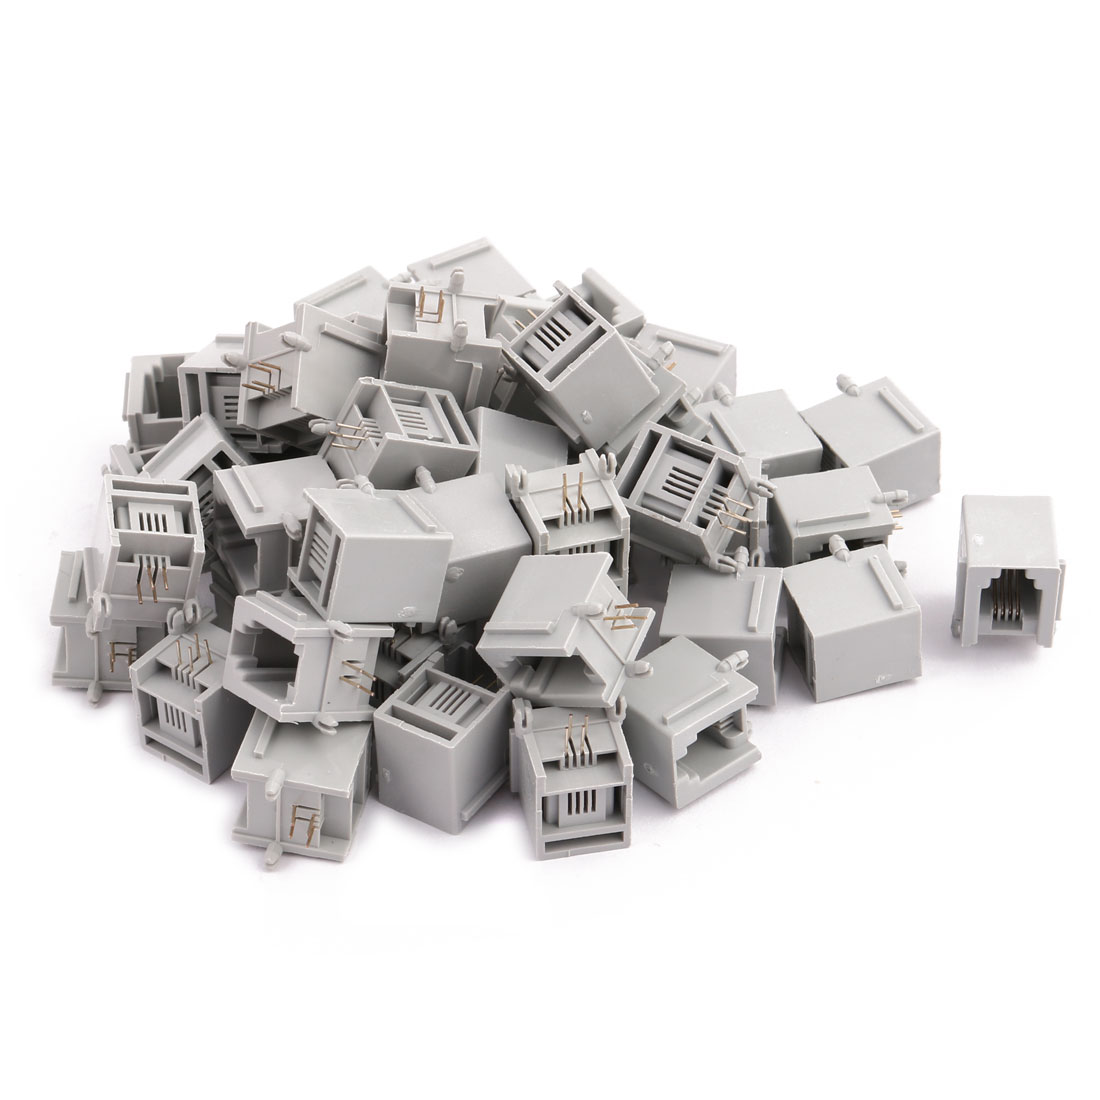 50Pcs Network Connector RJ11 4P4C Office Female PCB Mounting Modular Ethernet